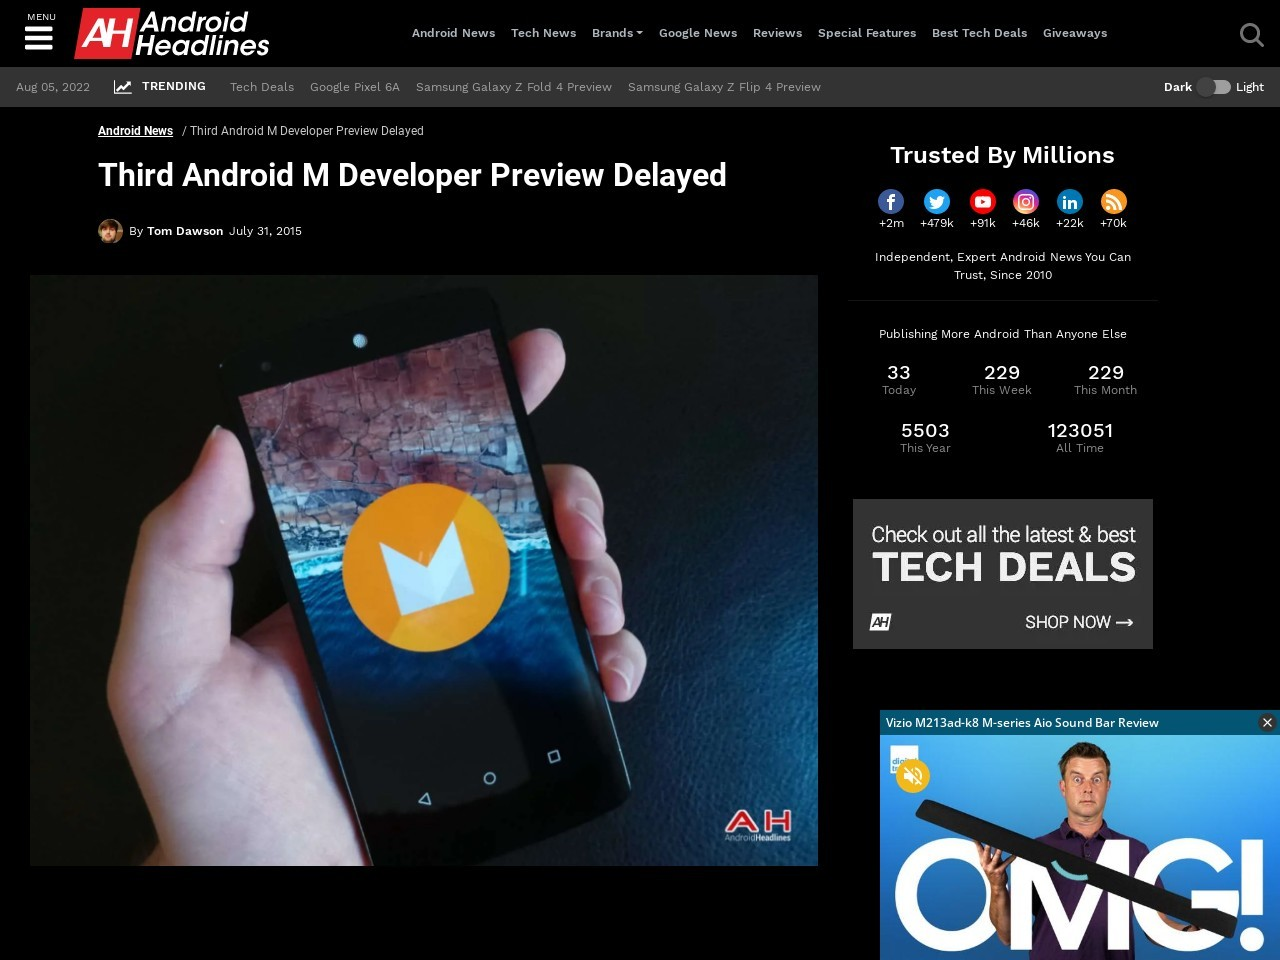 Third Android M Developer Preview Delayed